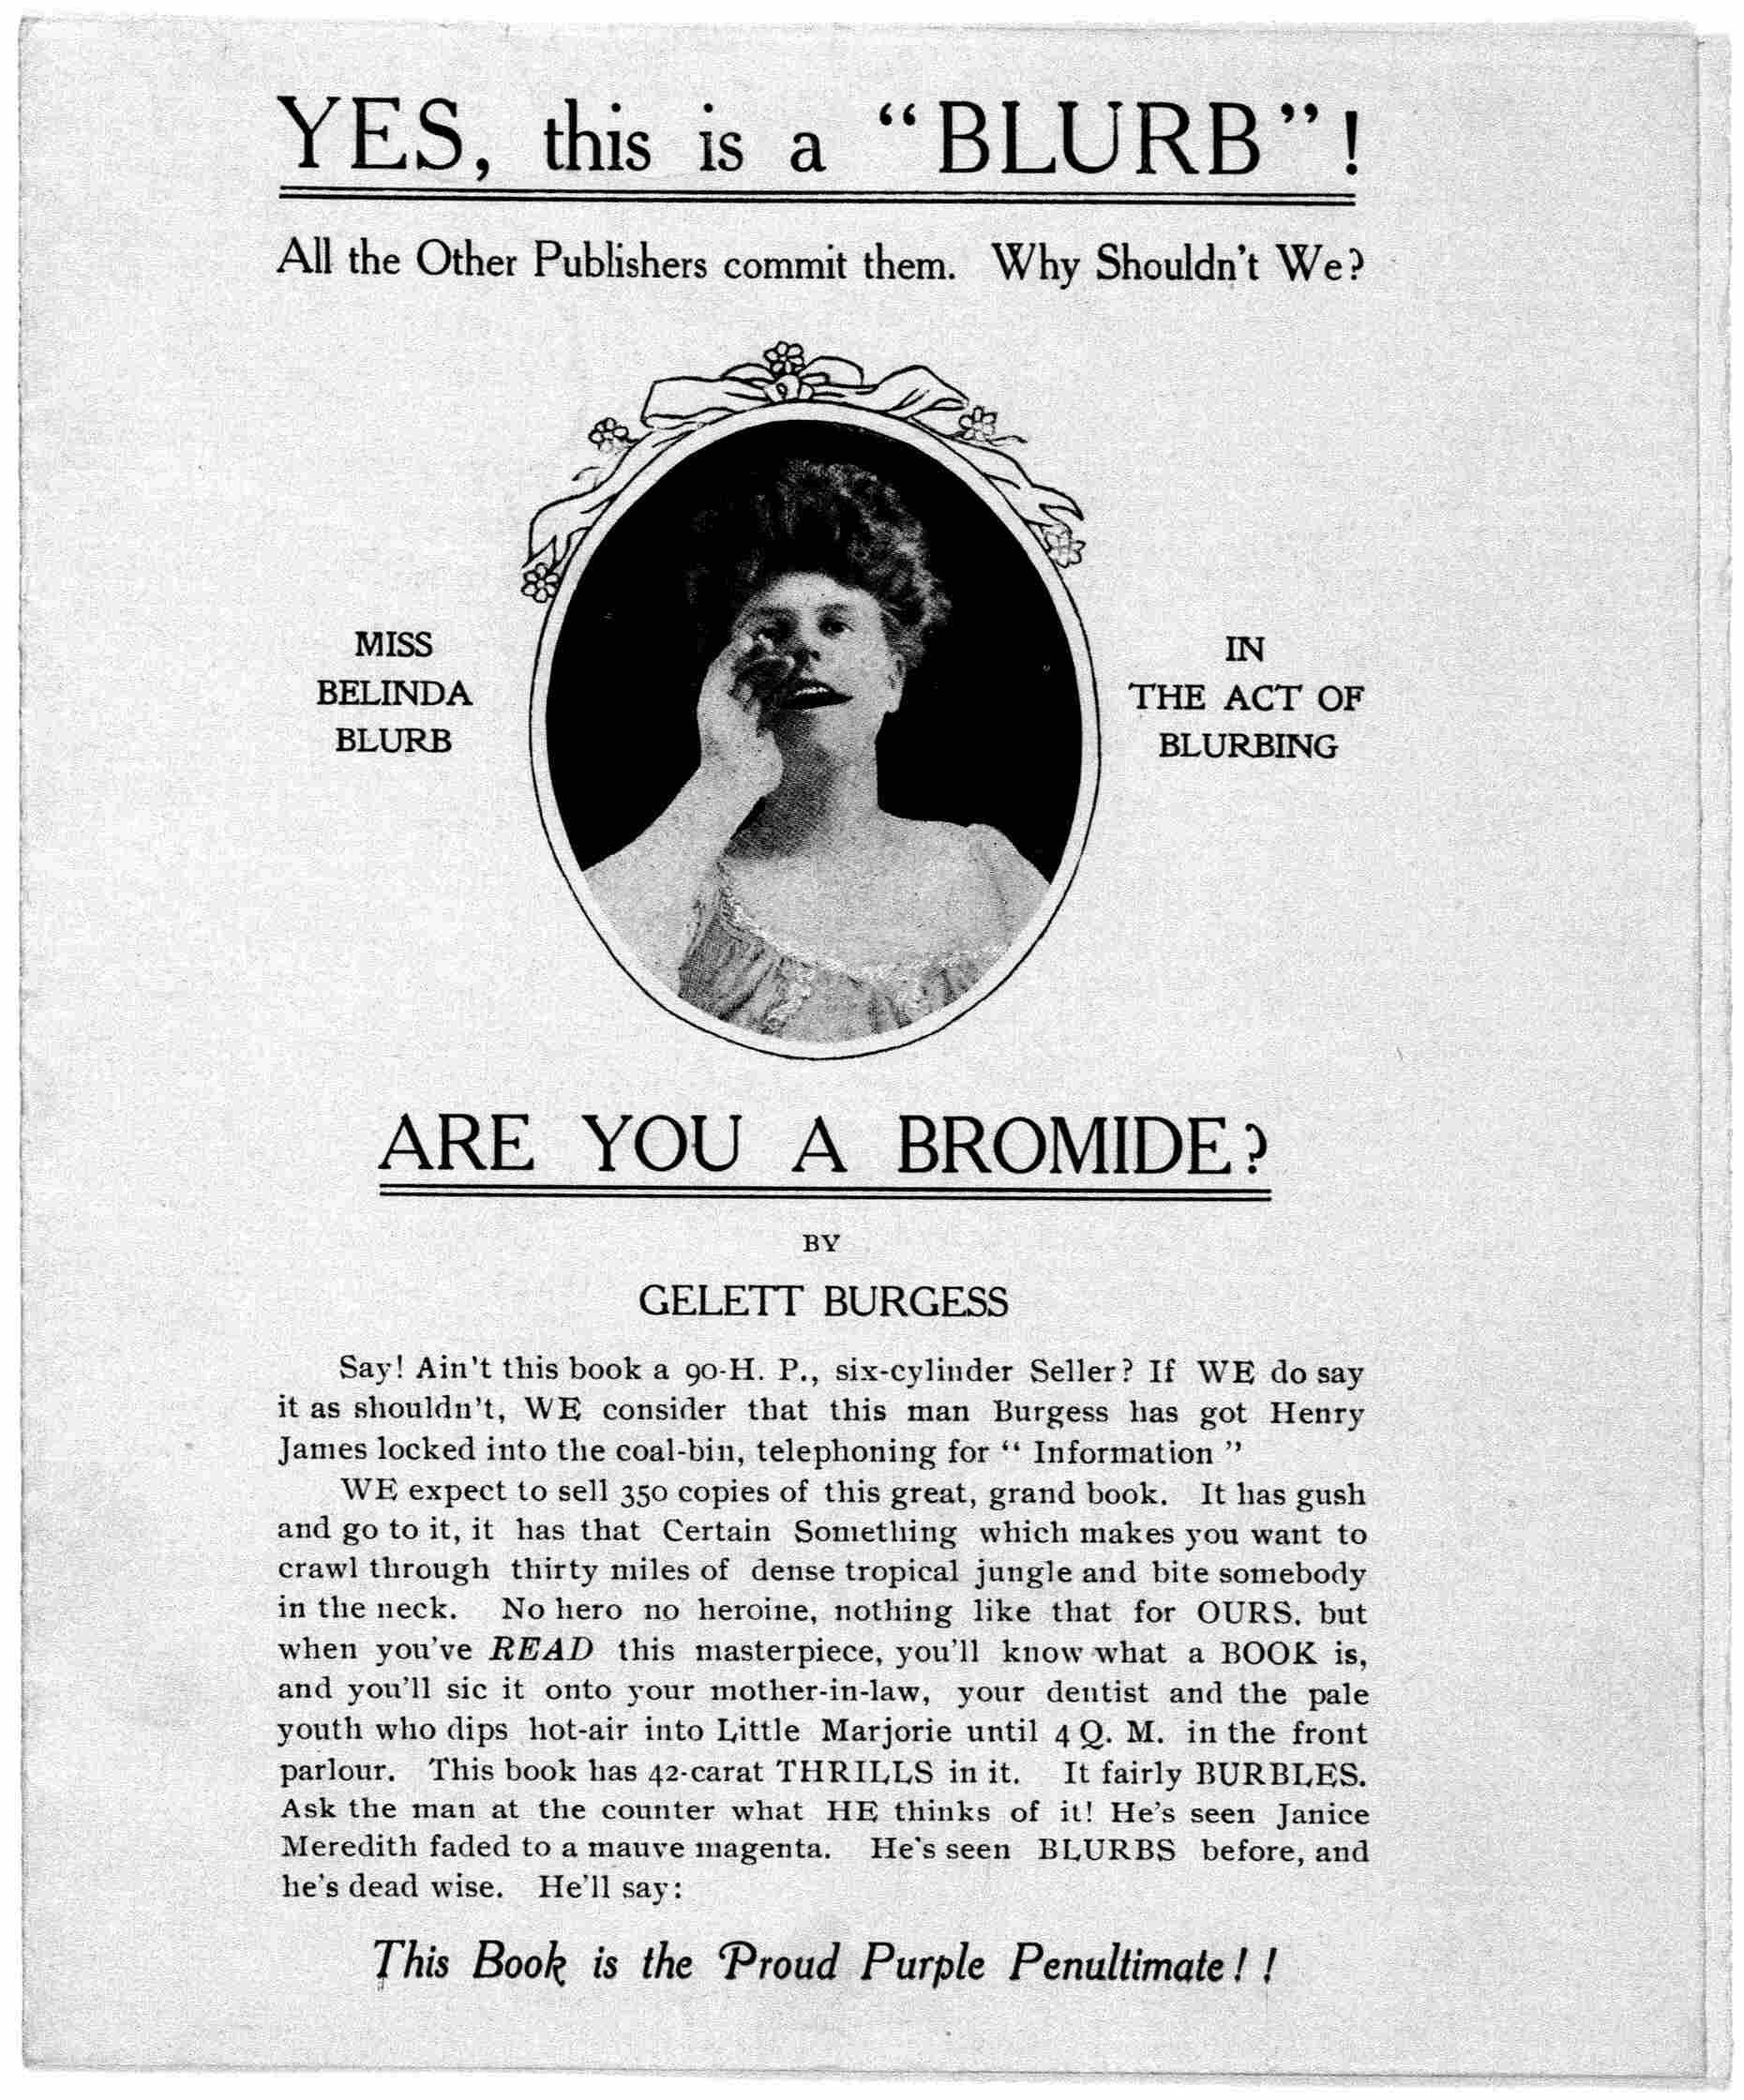 Jacket of Are You a Bromide? by Gelett Burgess; Library of Congress, Rare Book and Special Collections Division, Printed Ephemera Collection. https://www.loc.gov/resource/rbpe.24203600/?sp=1